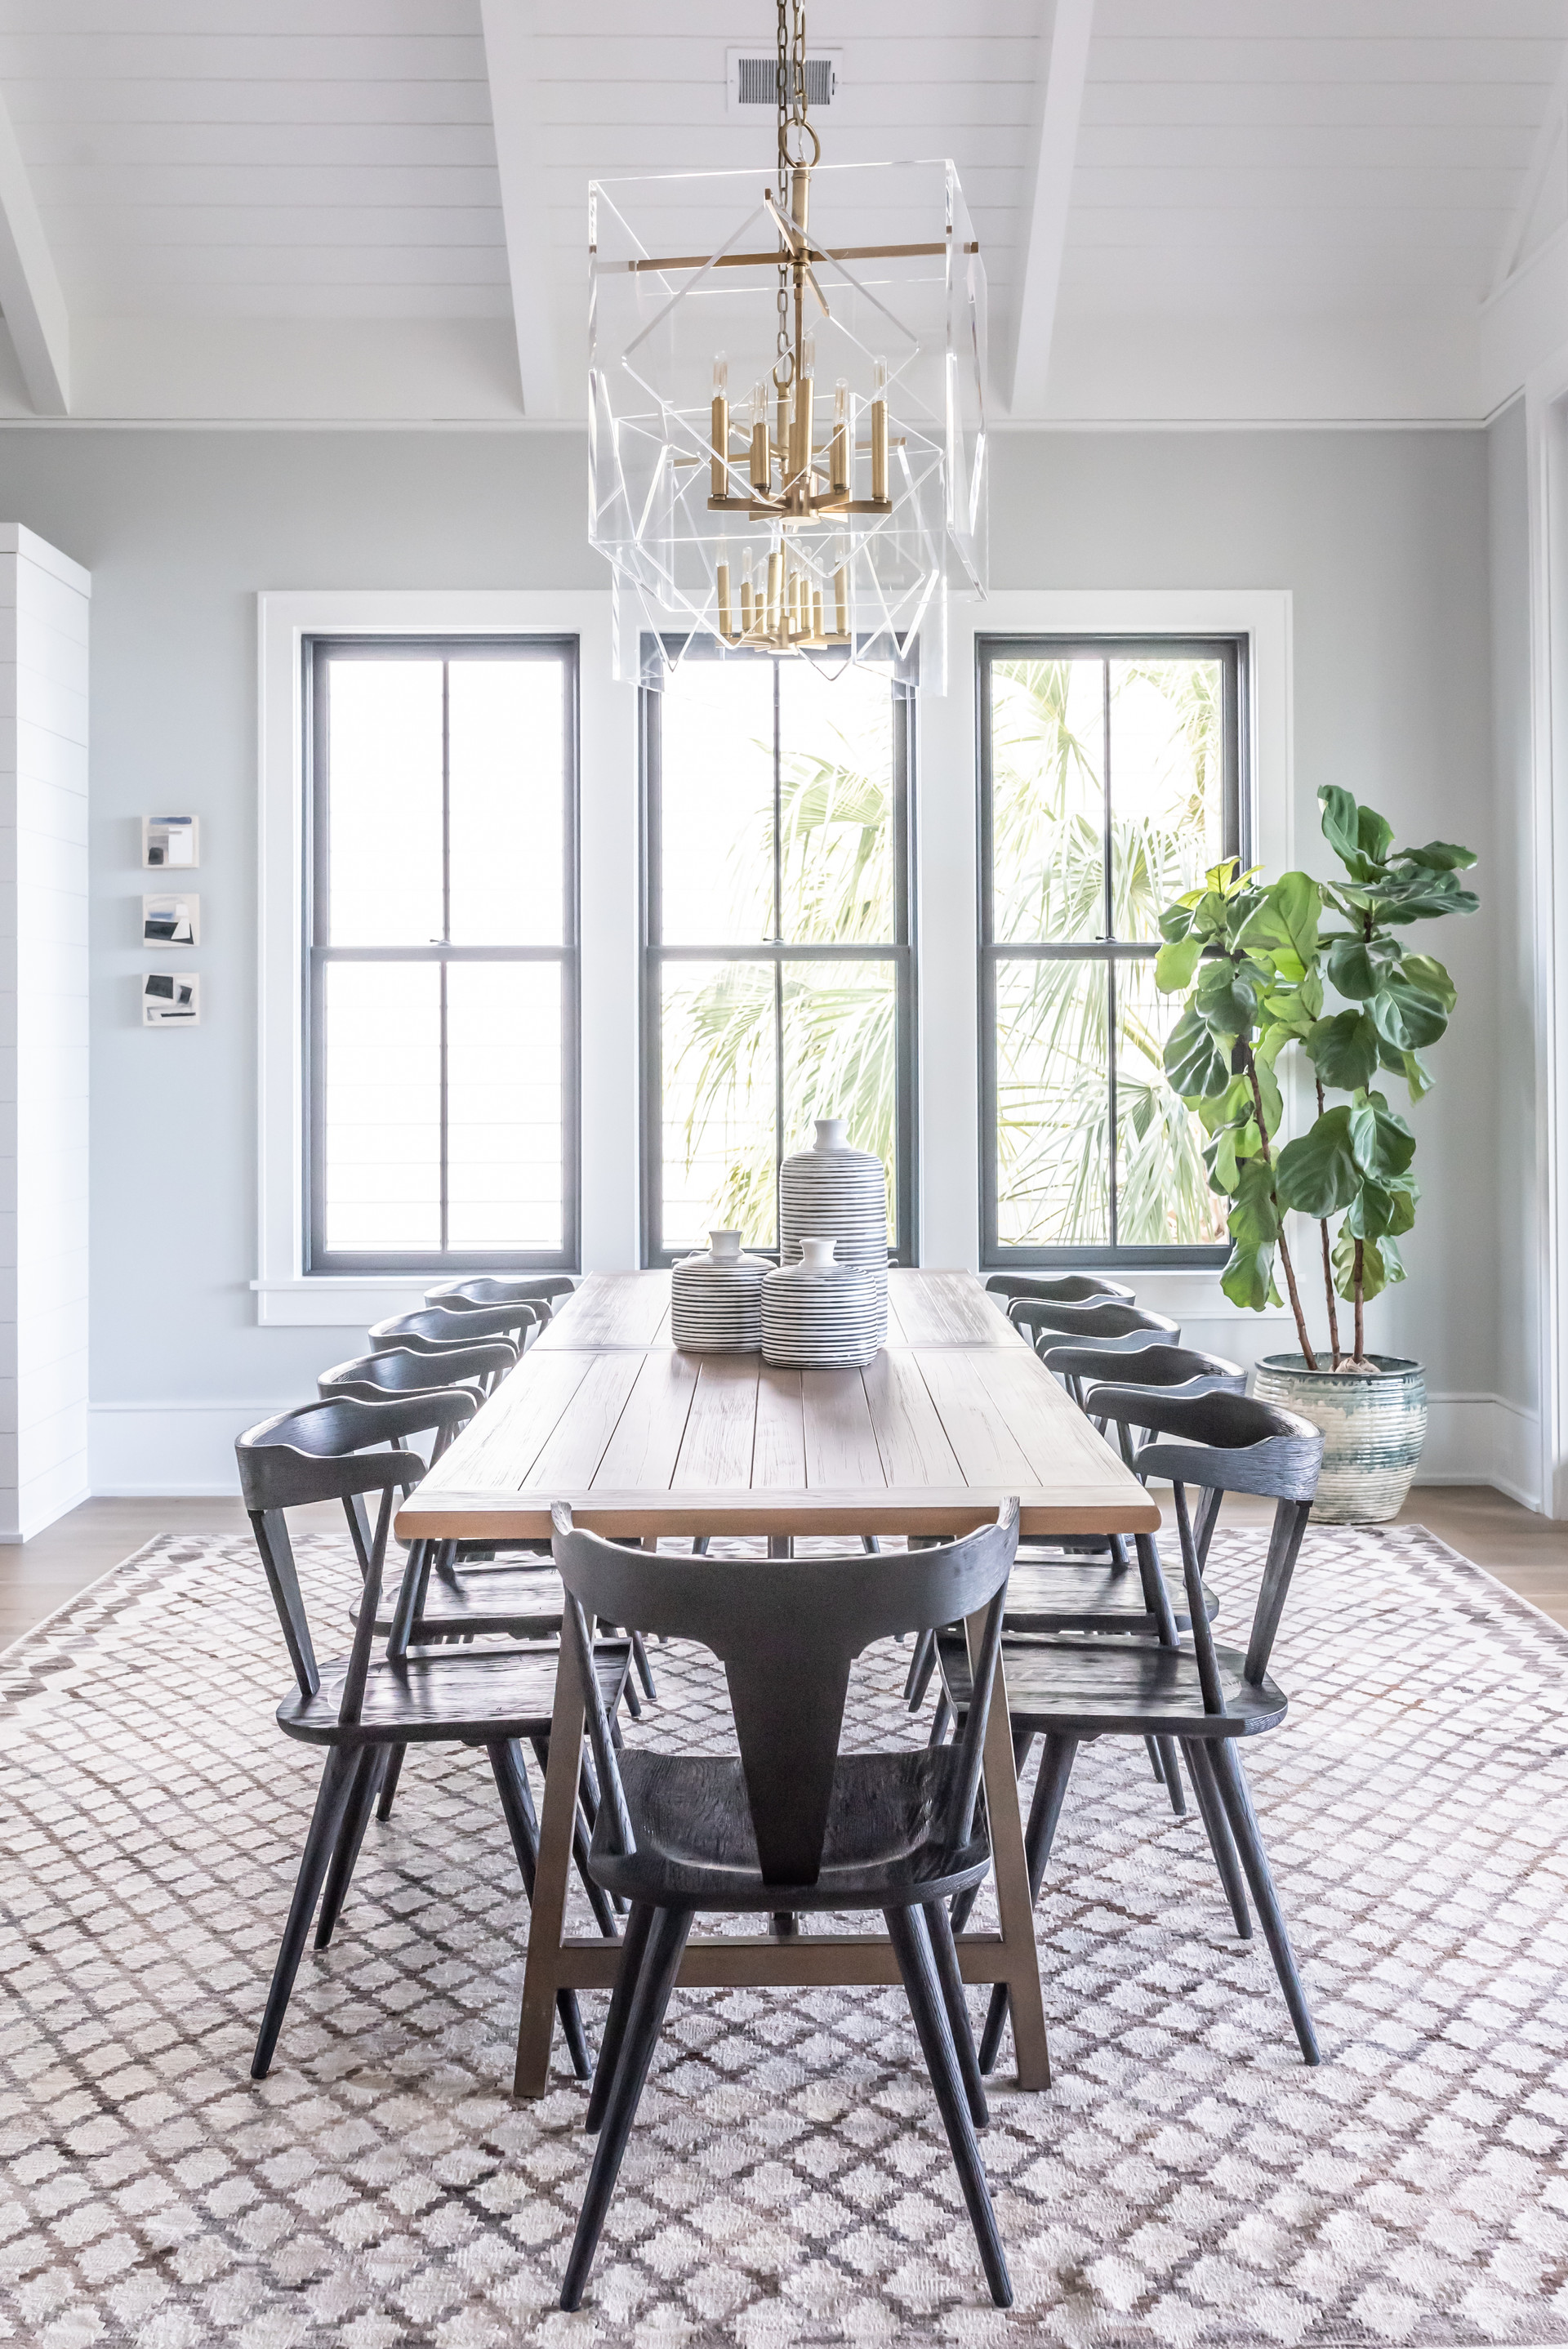 ADC-May1-2019-Dining-Room-2.jpg